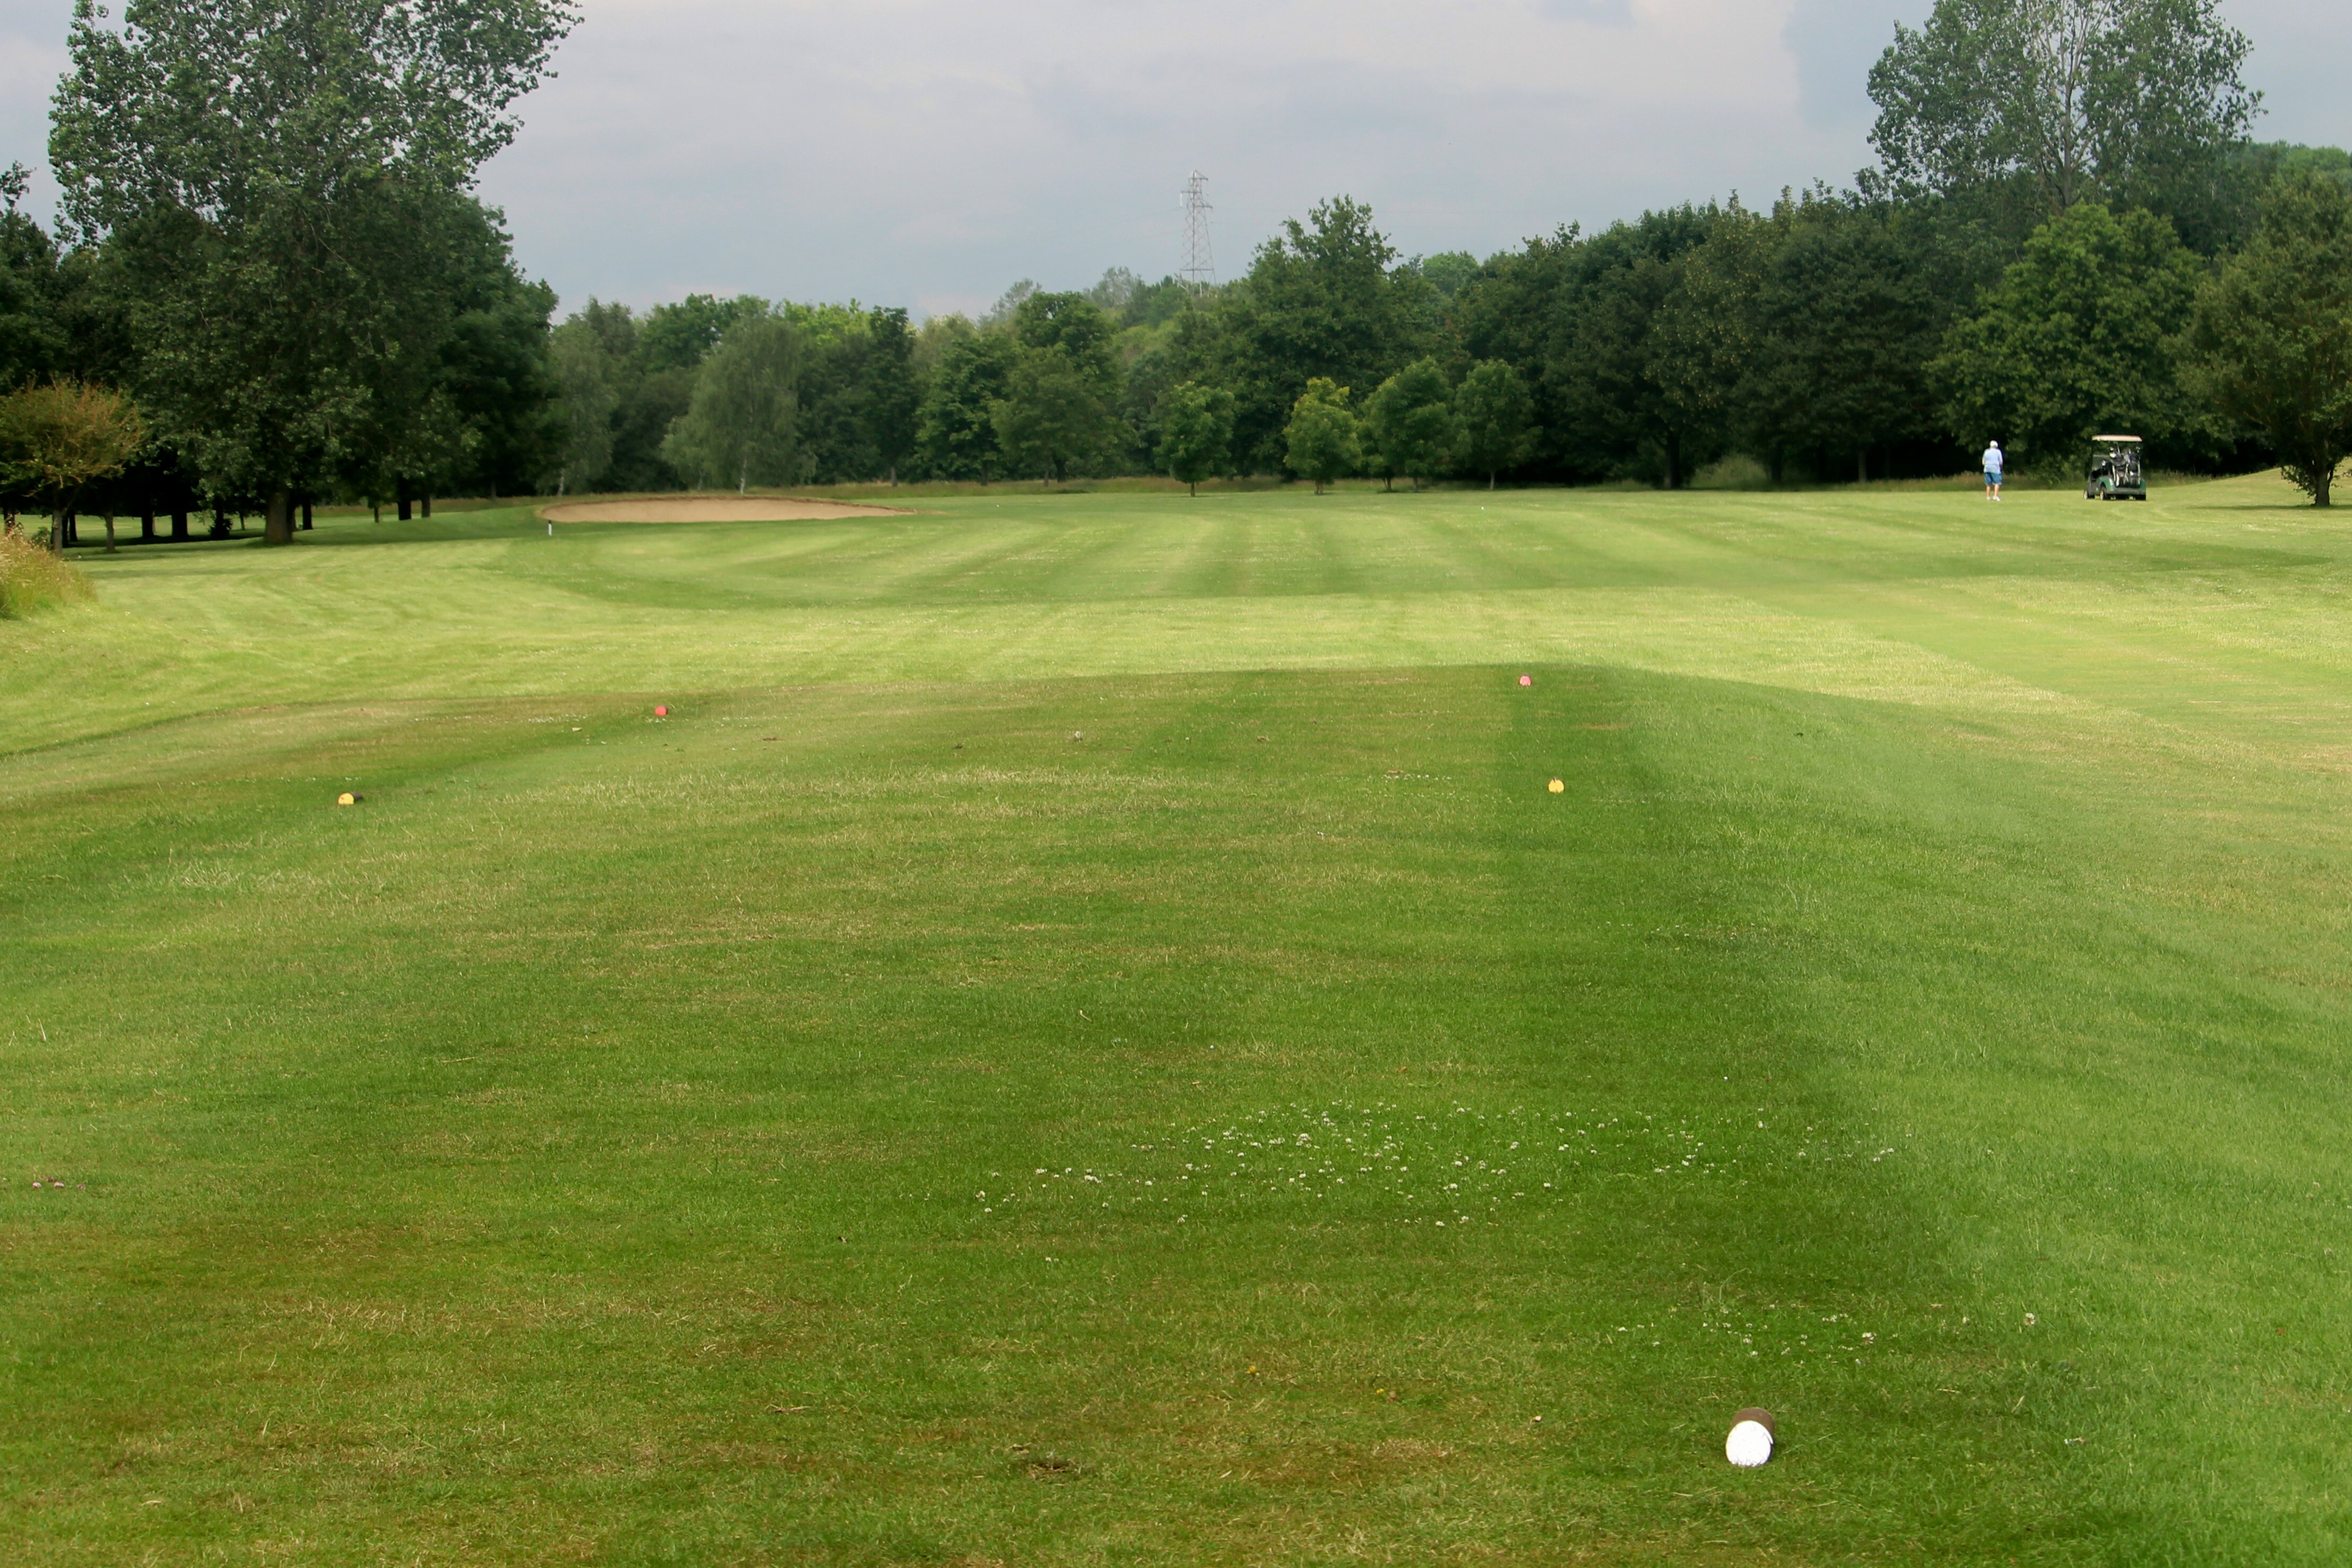 7th fairway from the tee